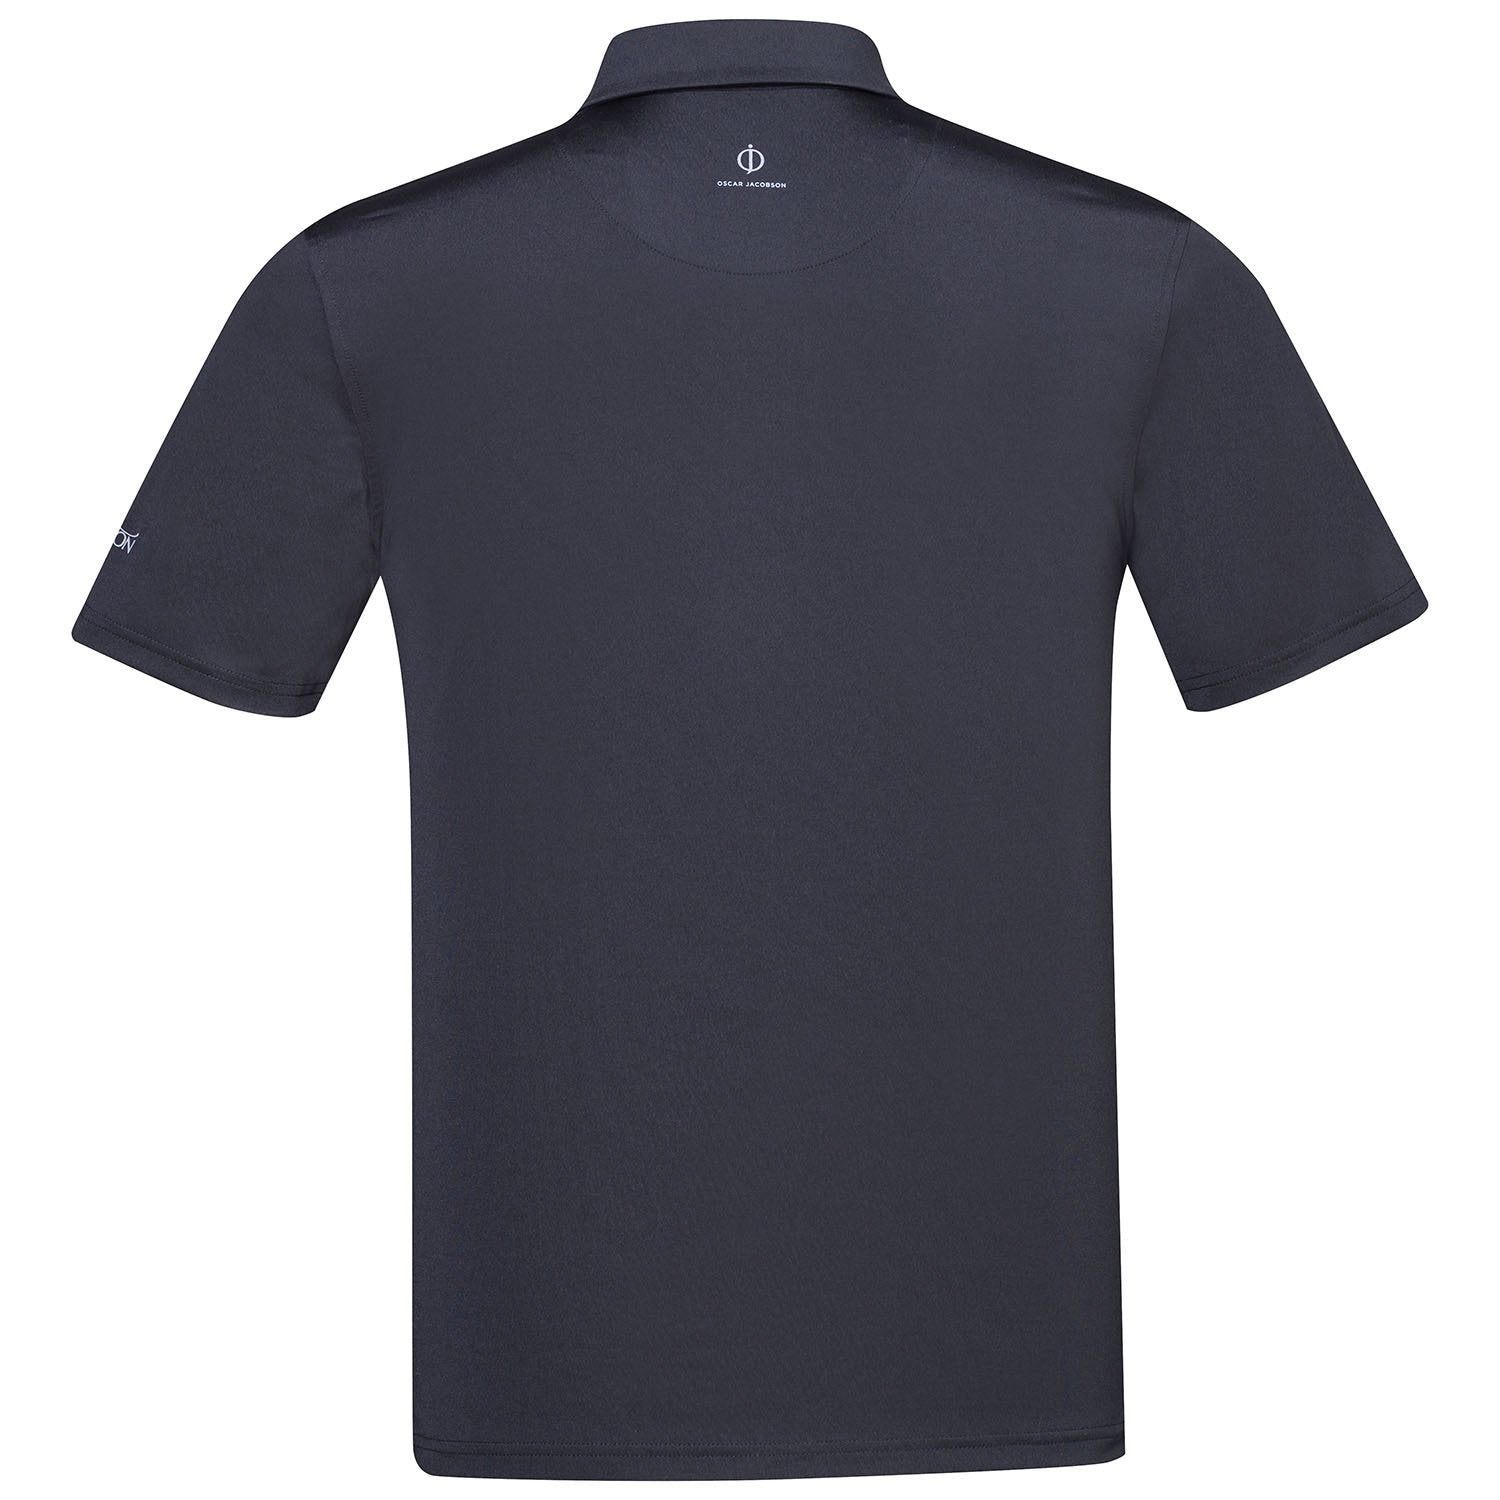 Oscar Jacobson Chap Course Polo Shirt in Black